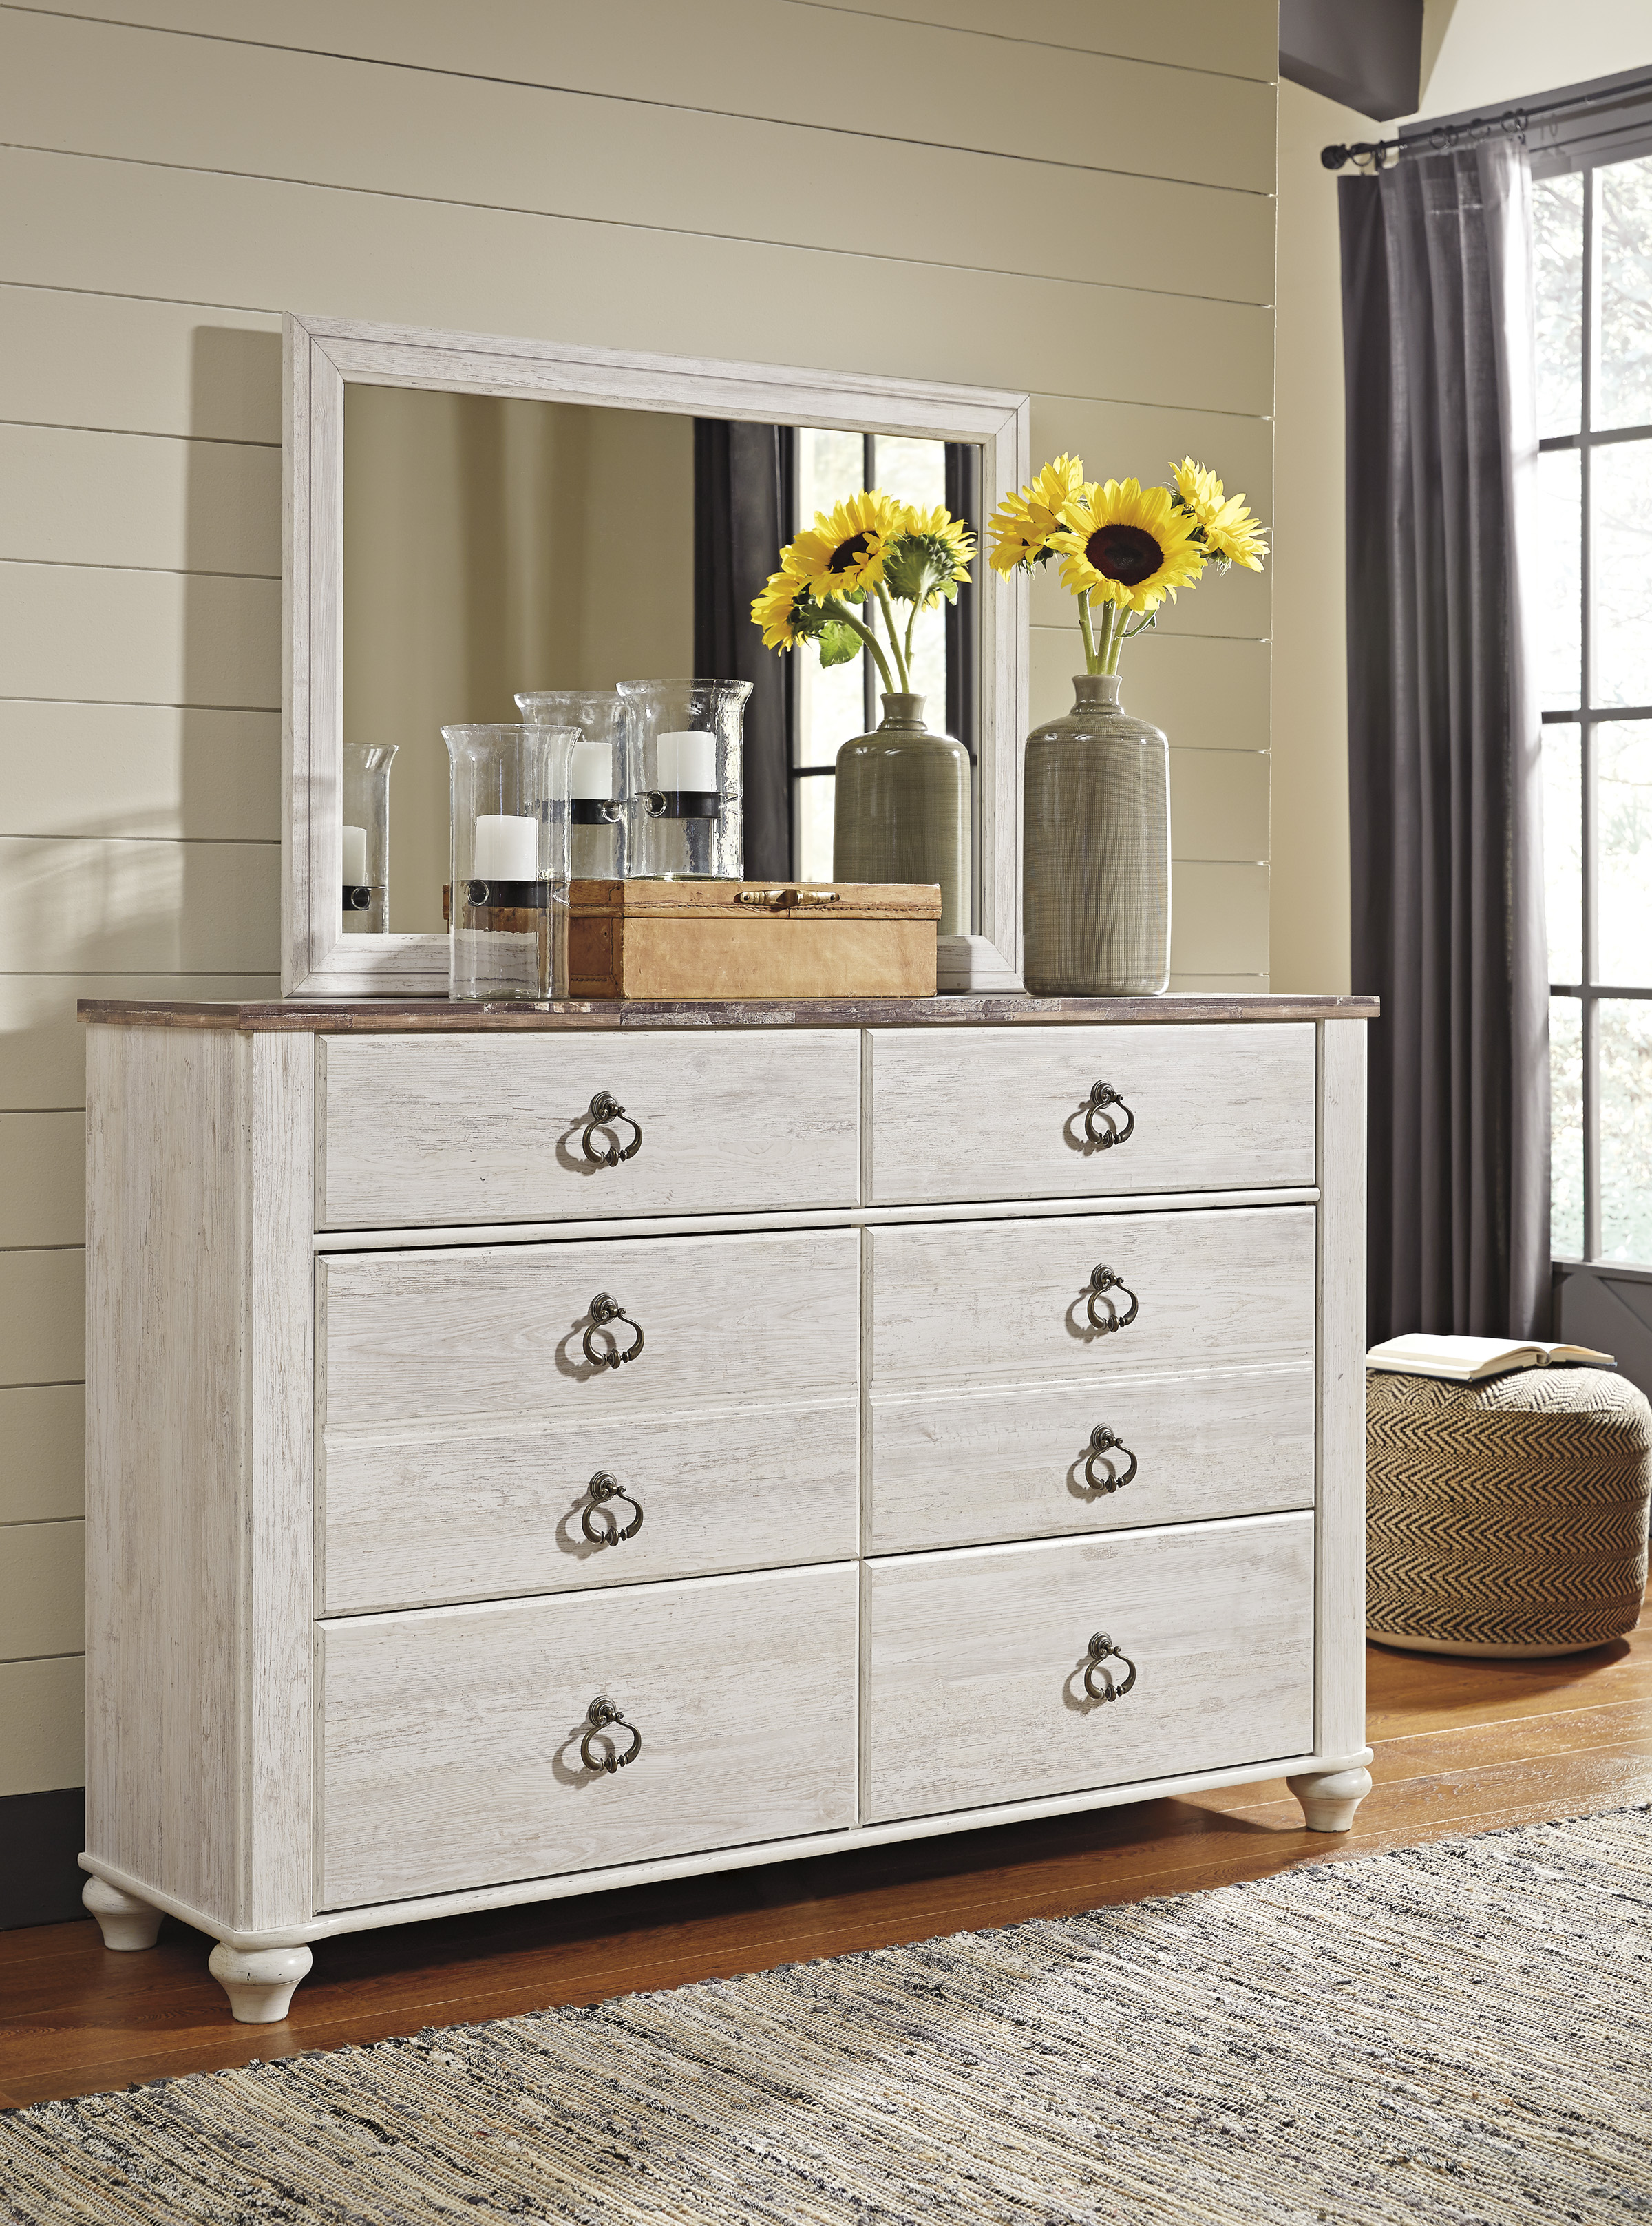 Willowton Whitewash Bedroom Set Clearance Sale Marjen Chicago Discount Furniture